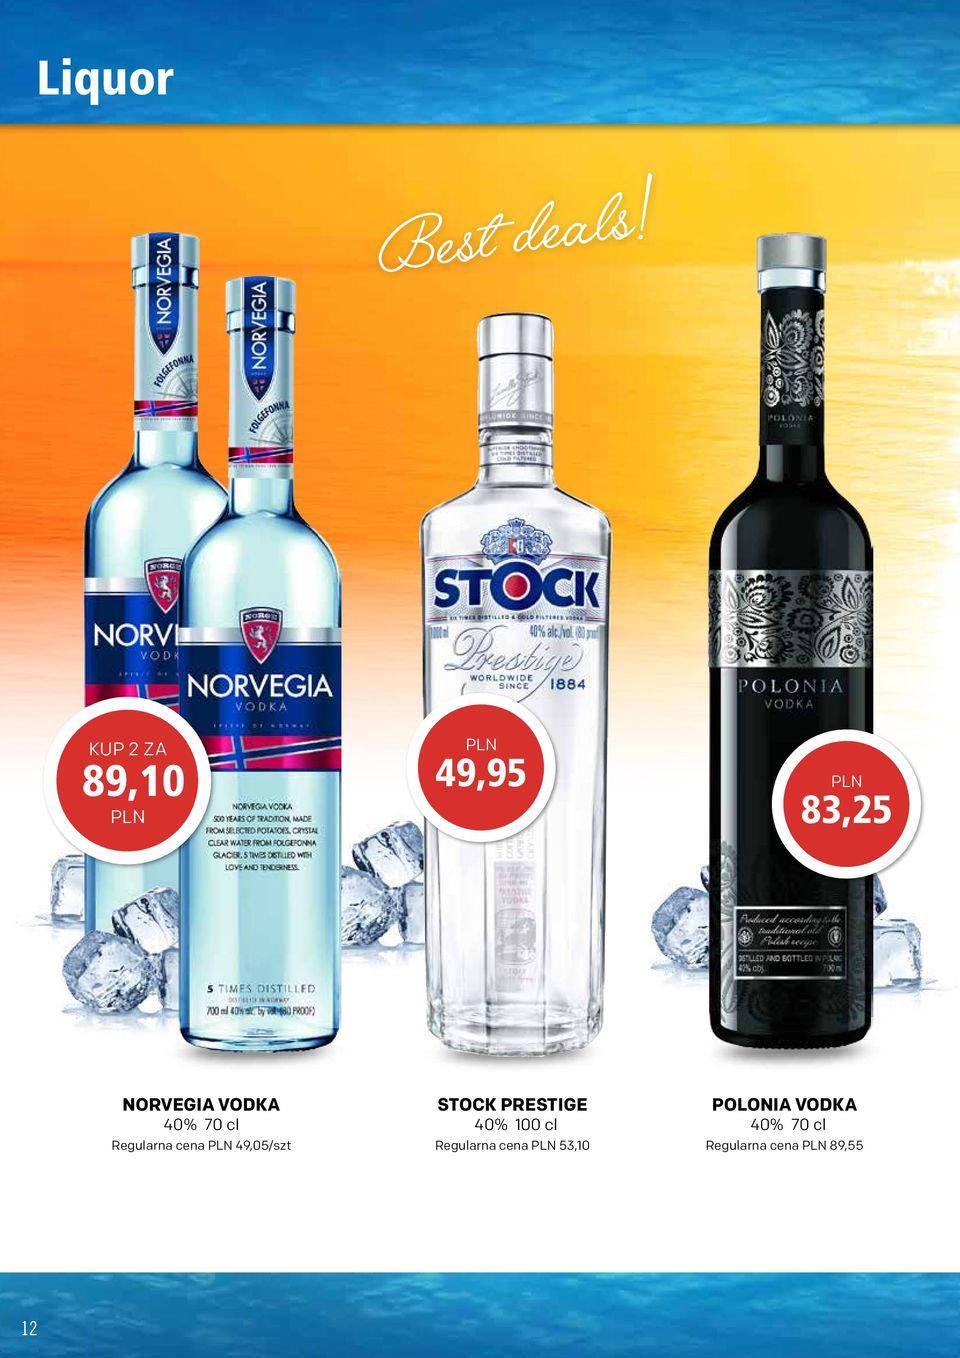 VODKA 40% 70 cl 49,05/szt STOCK